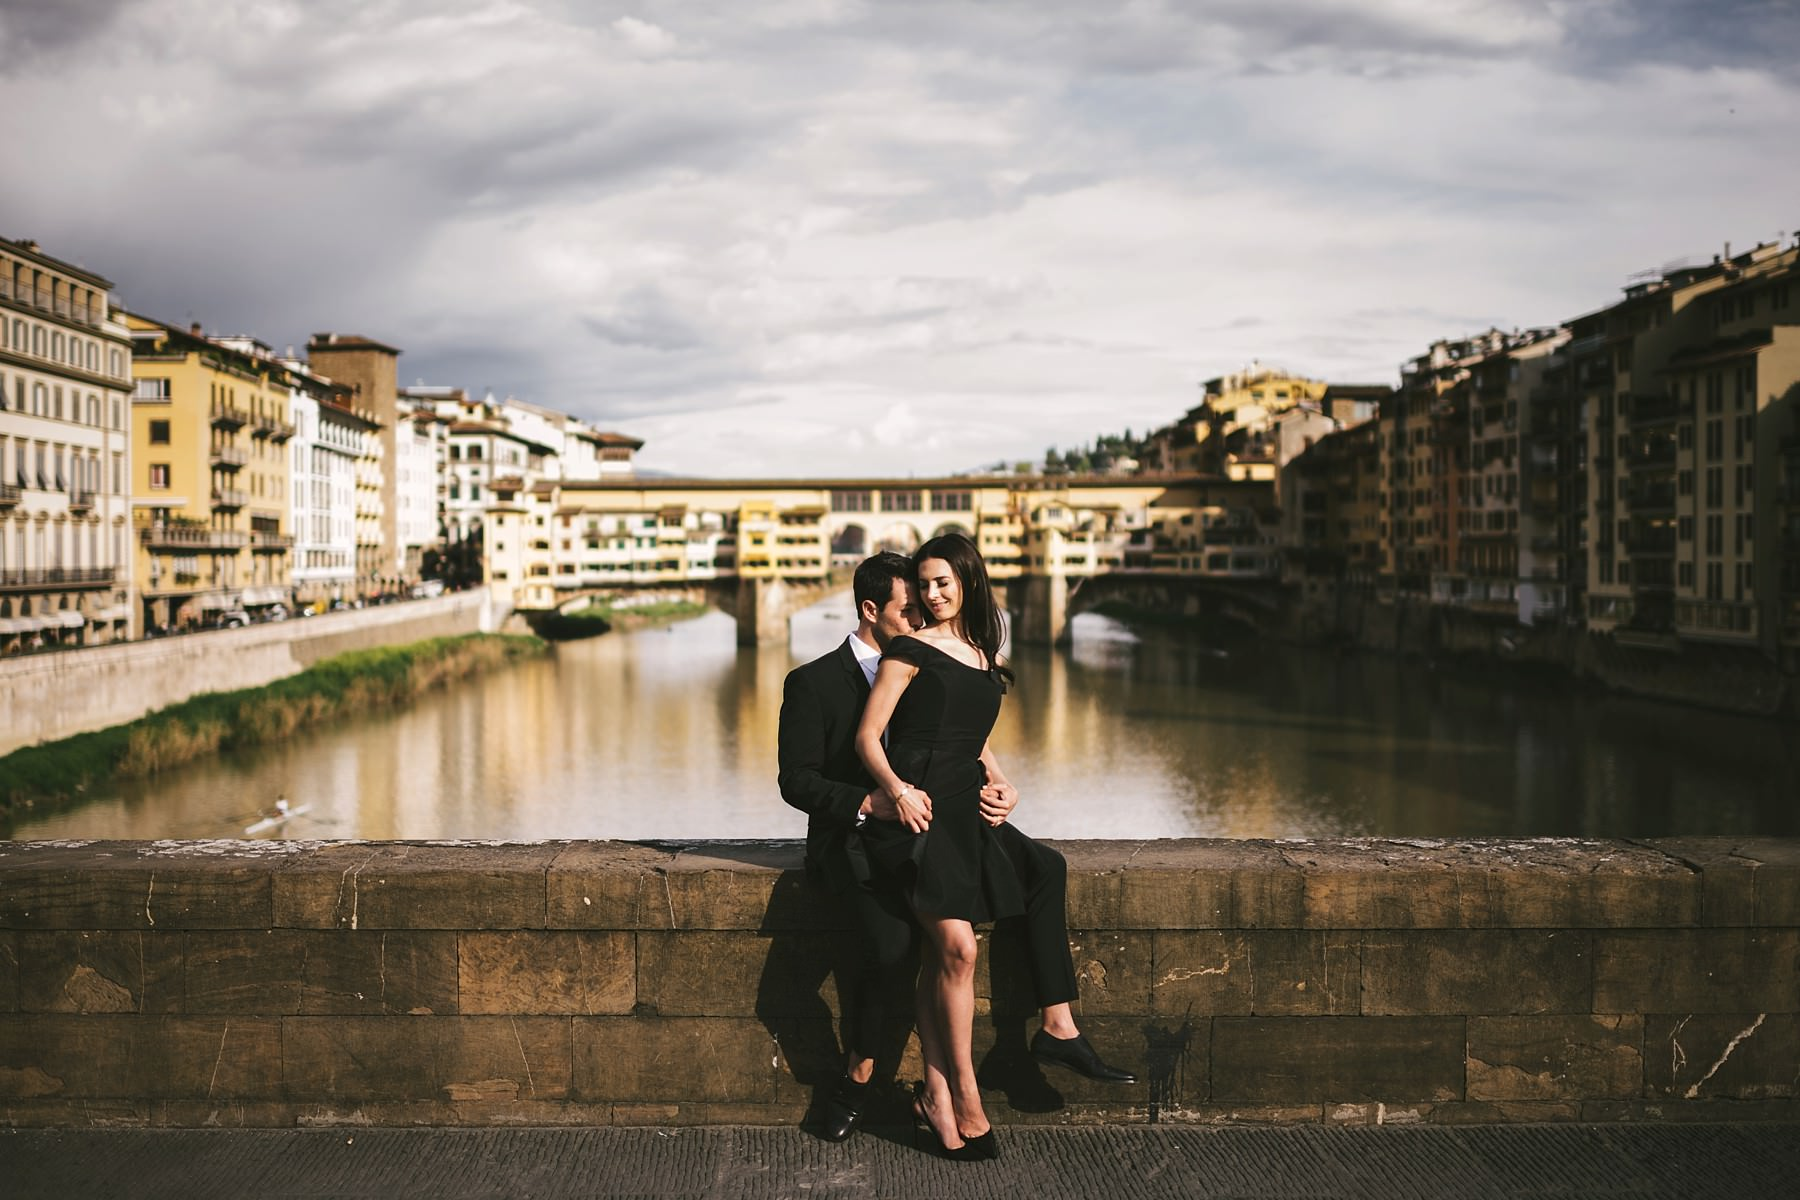 The iconic Ponte Vecchio in Florence is one of the most requested spot of the city. Romantic and everlasting couple portrait photo shoot